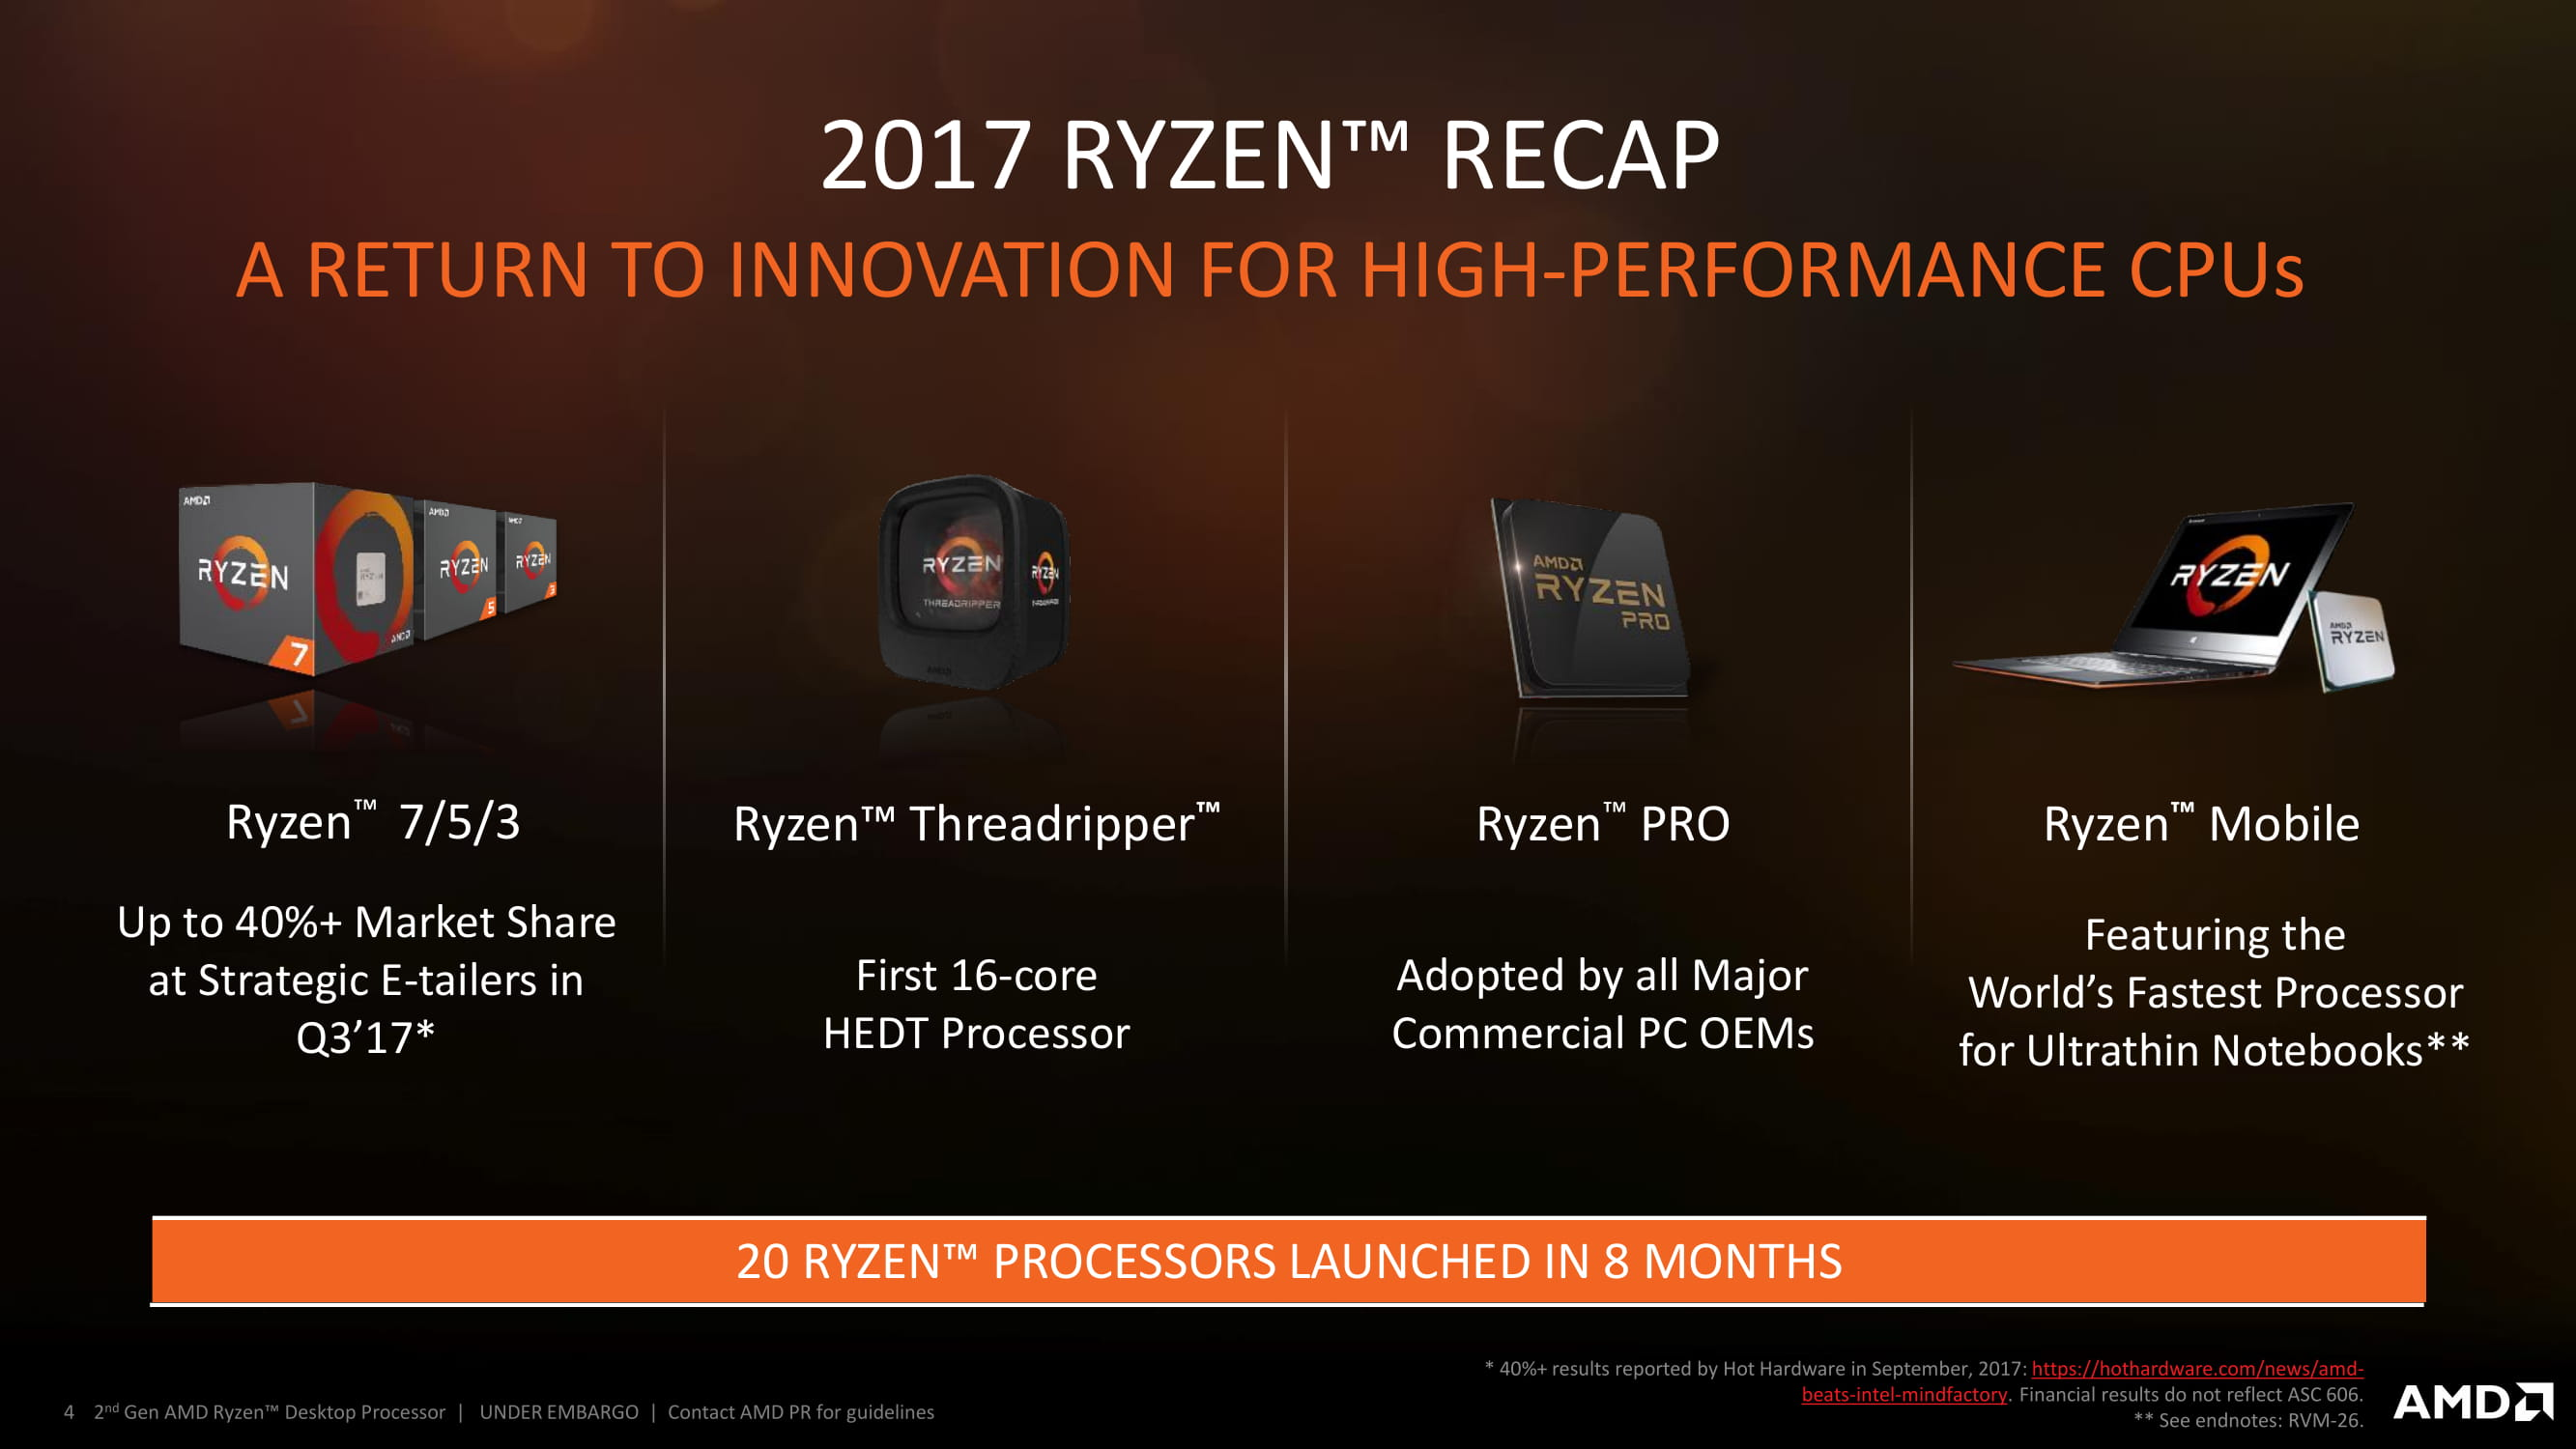 2nd Gen AMD Ryzen Desktop Processor-2-04.jpg